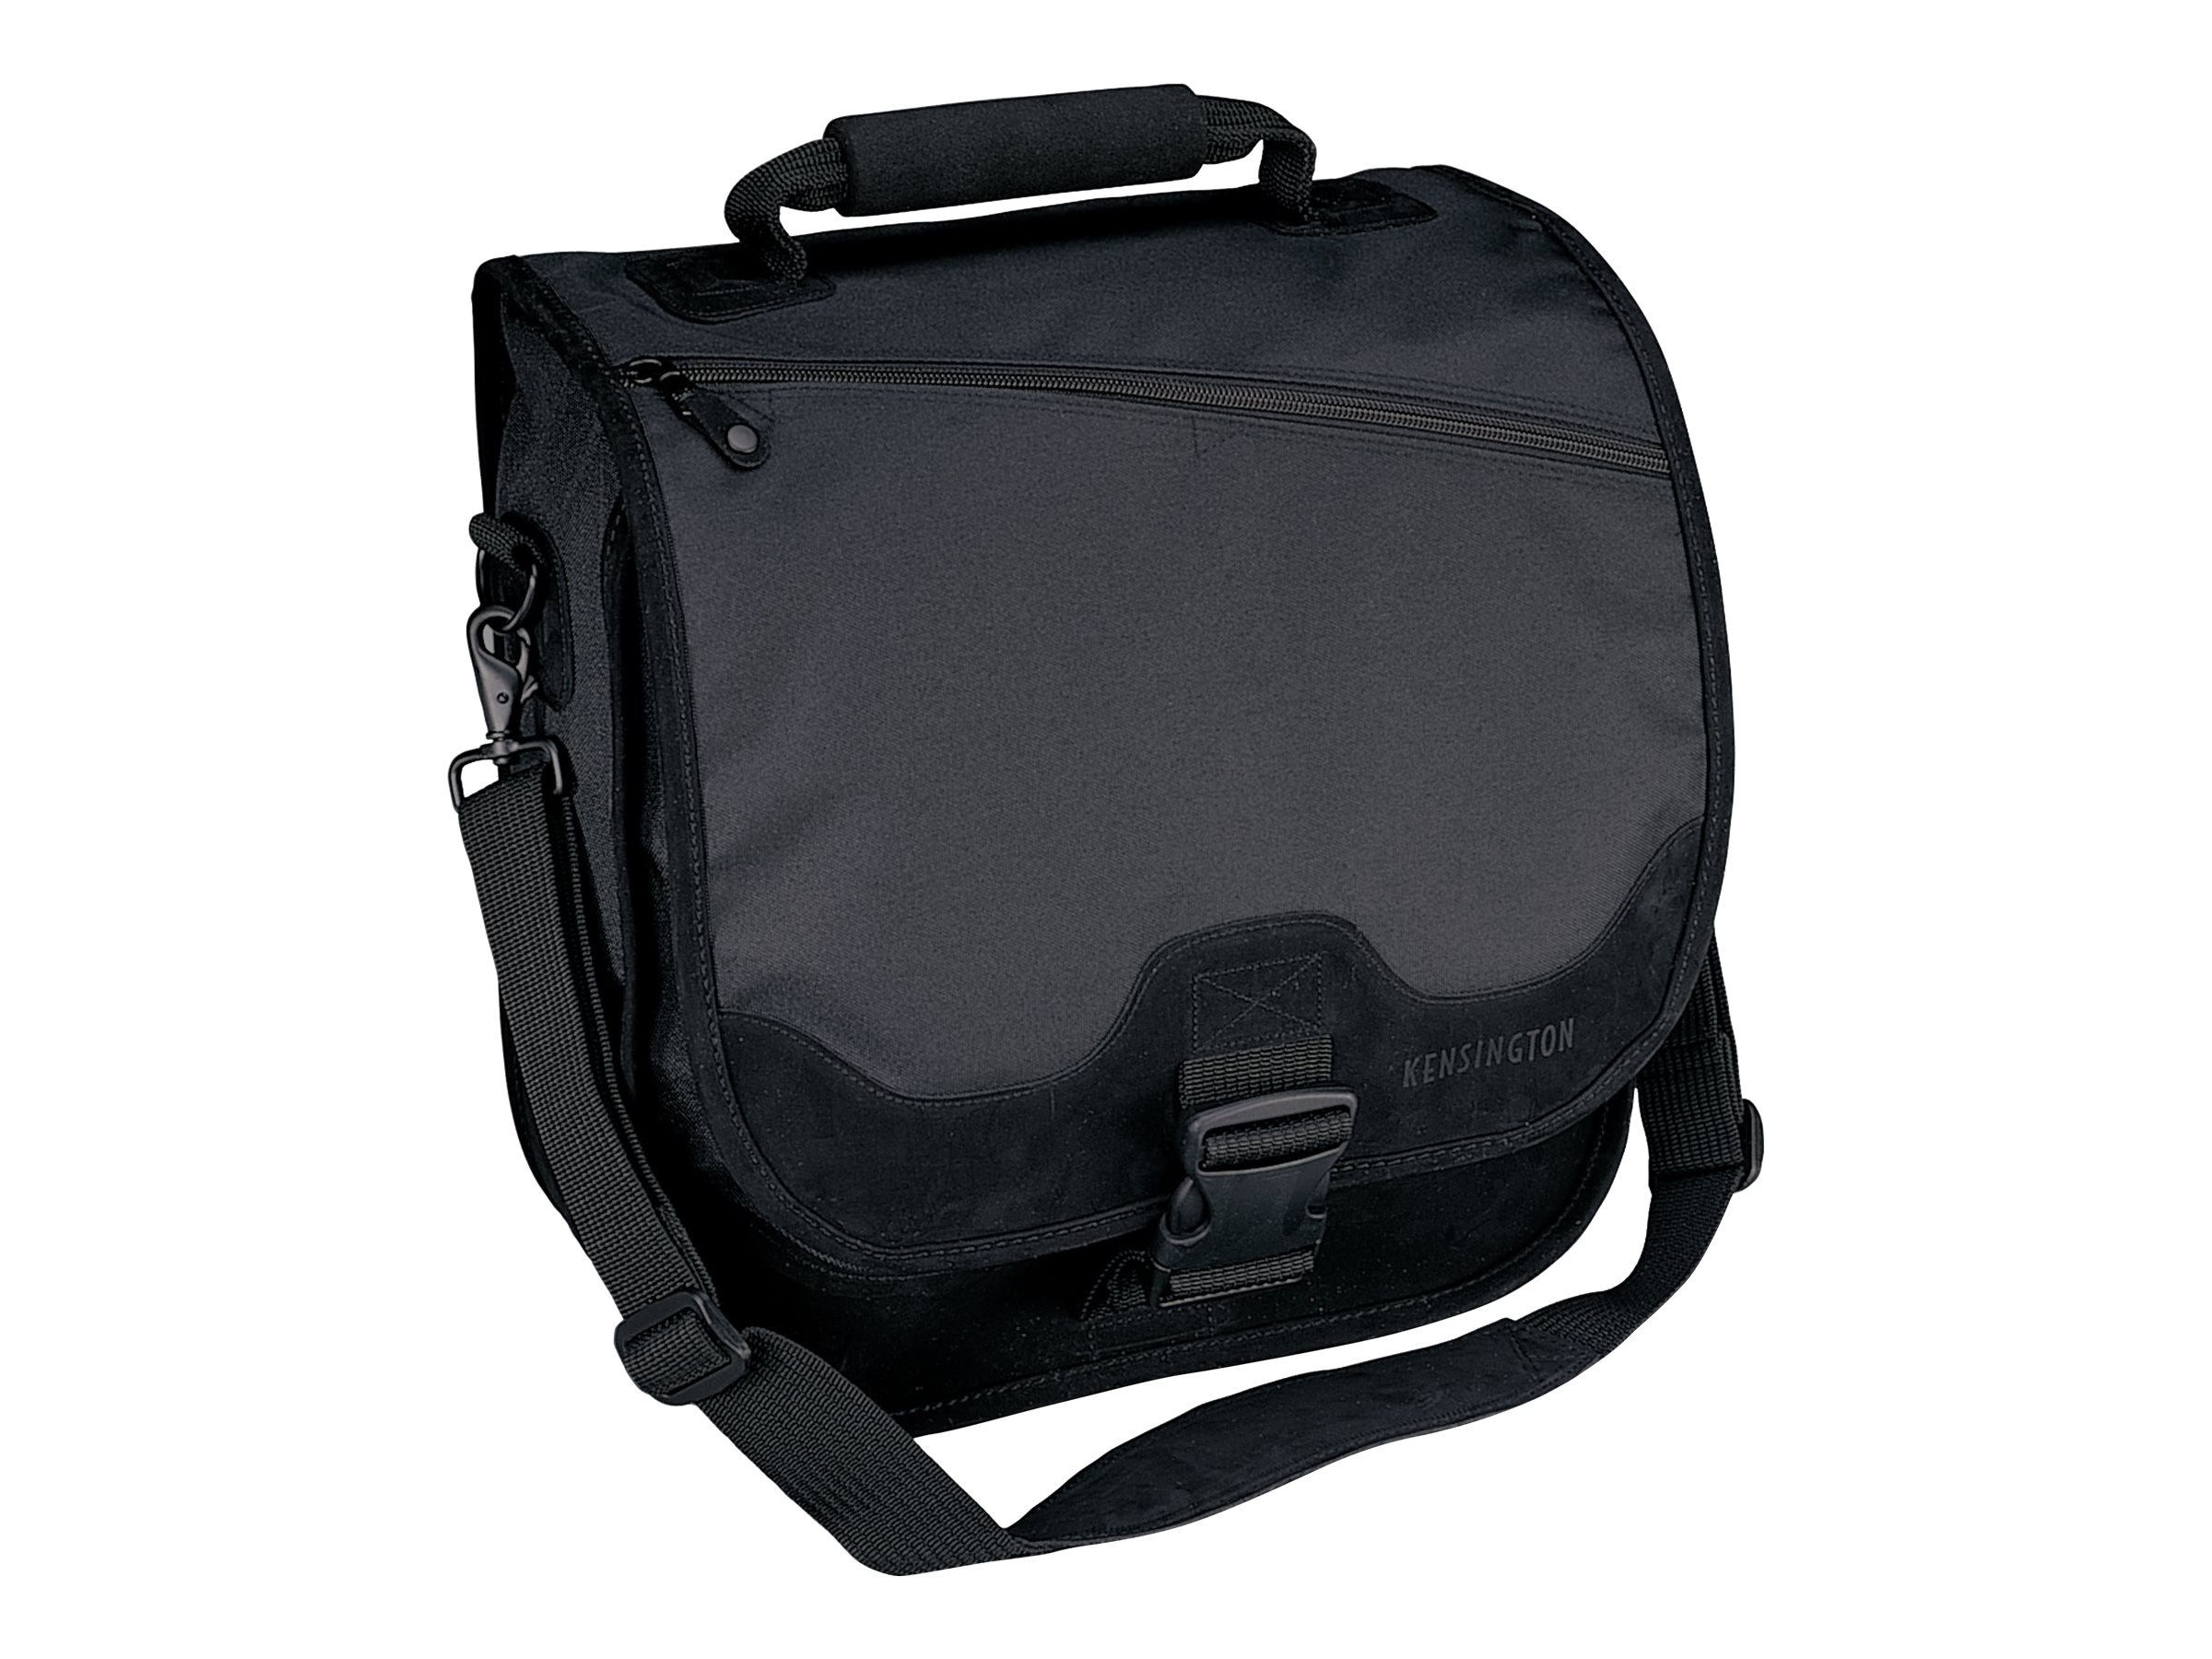 Kensington SaddleBag 15.6 Notebook Carrying Case, Black